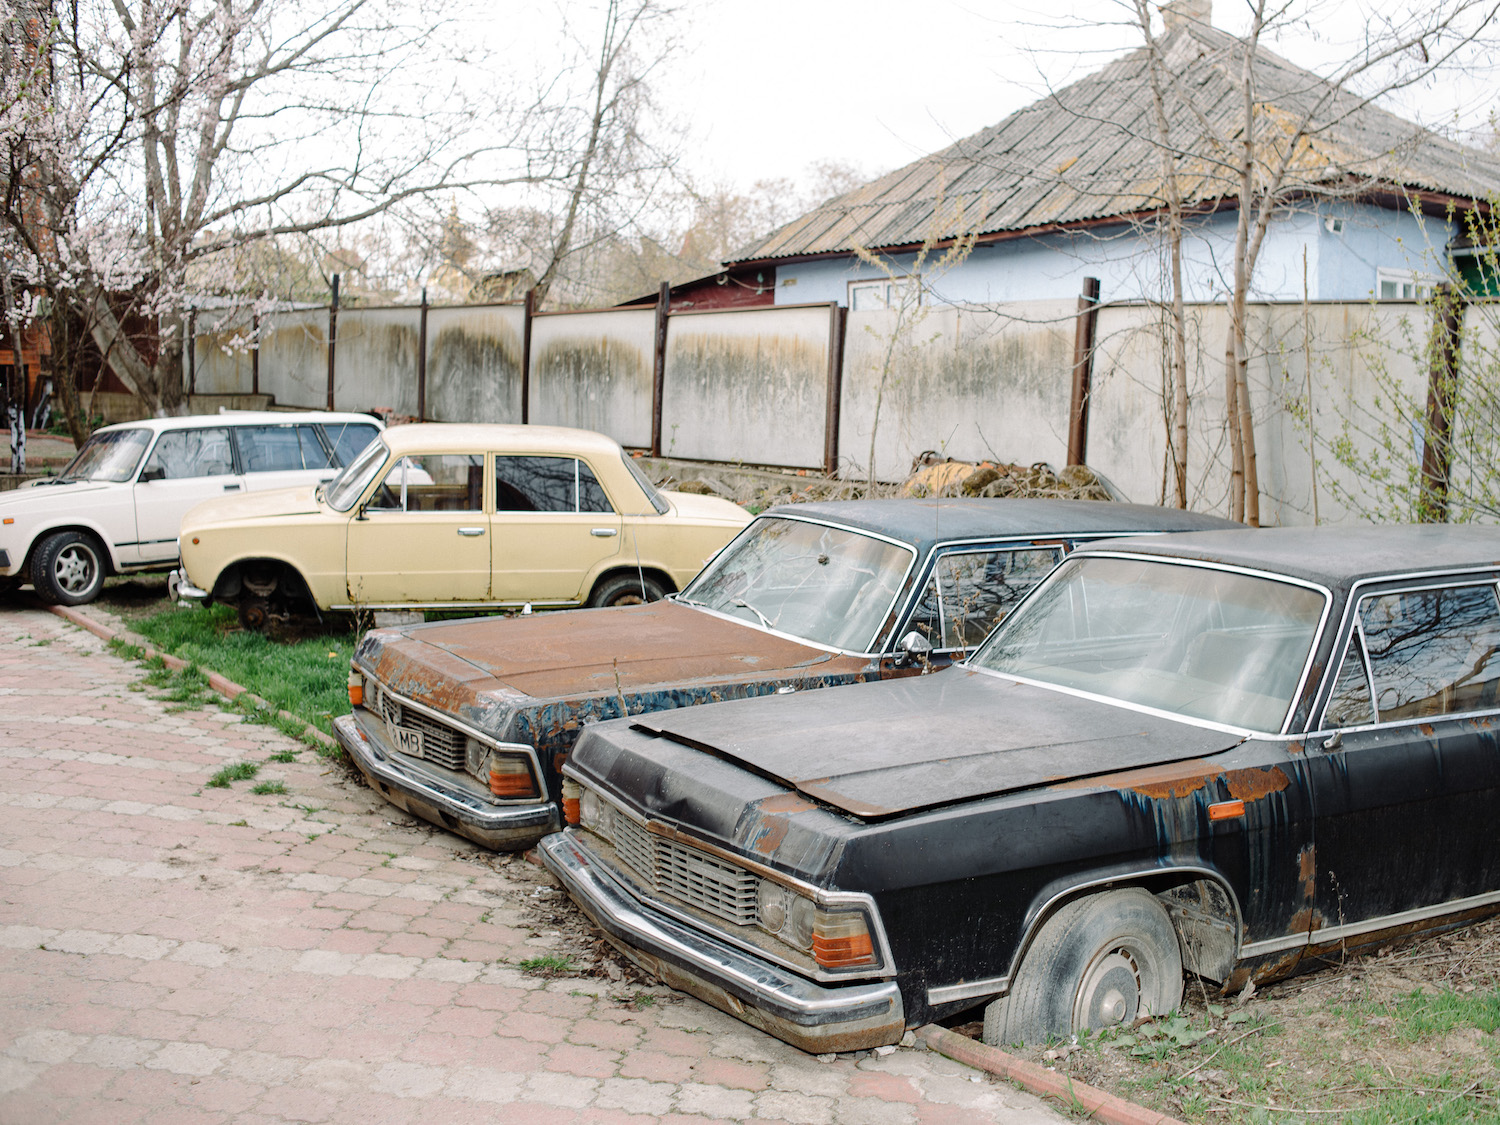 The Baron's collection of Soviet-era cars